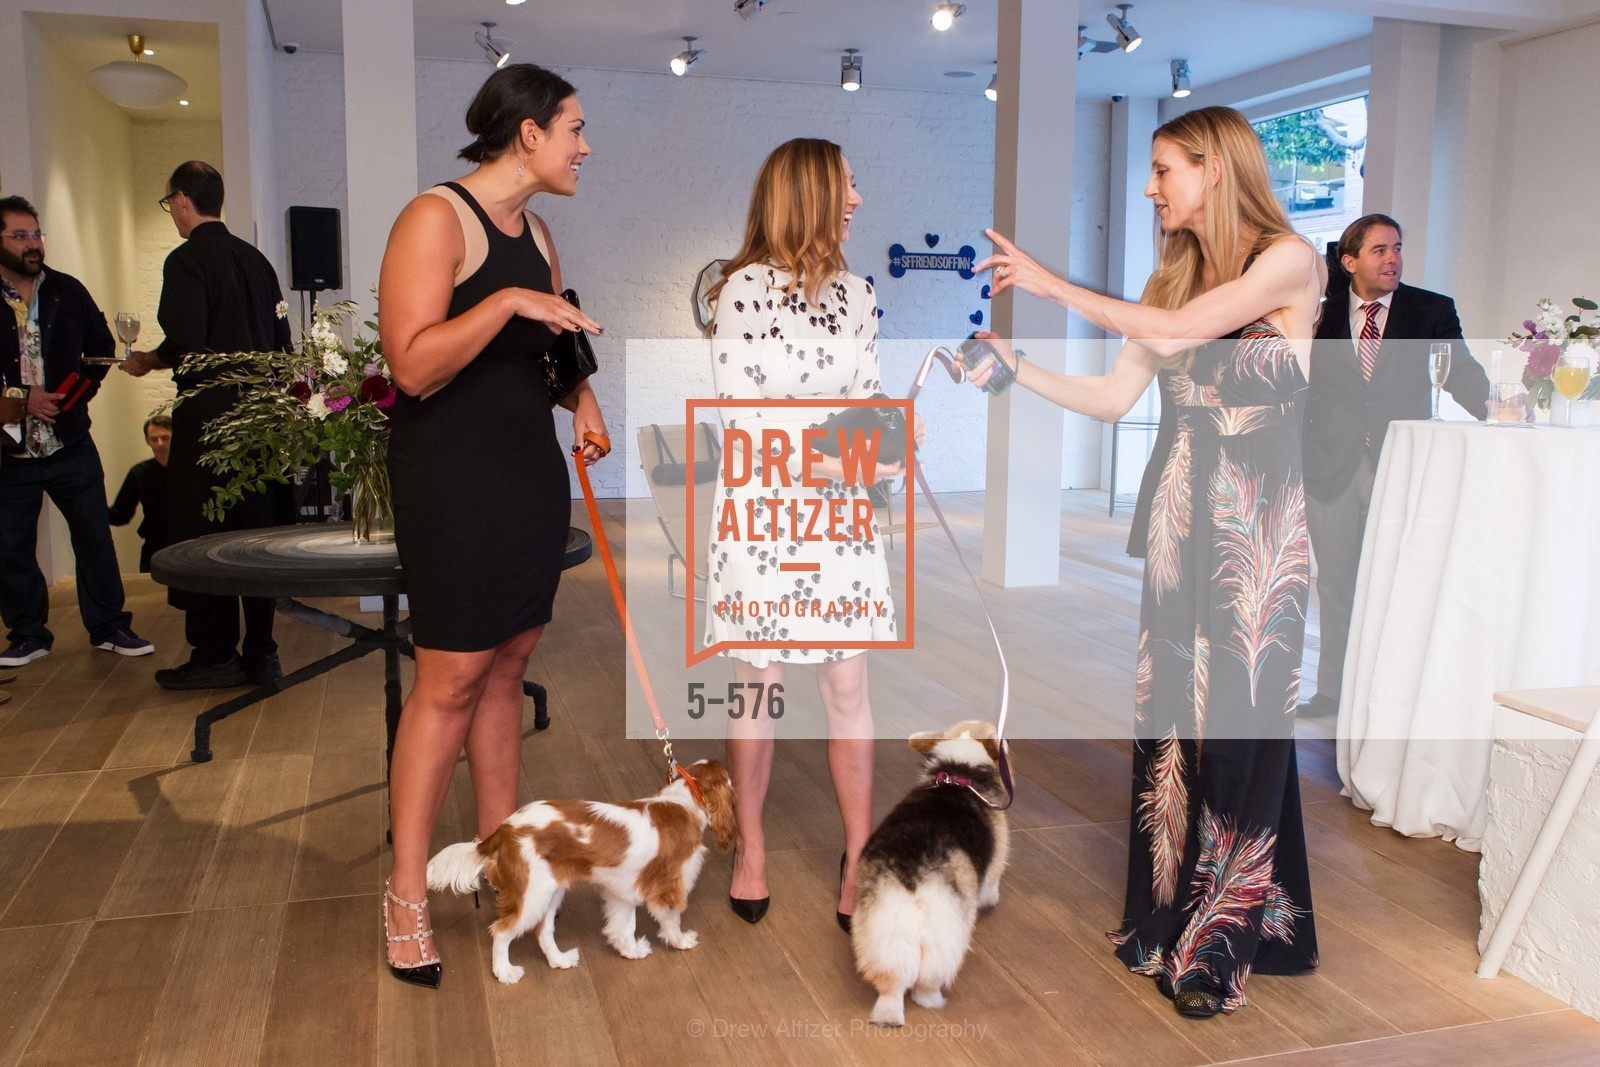 Libby Lefler, Rebecca Miller, Elyssa Douroux, SF FALL ANTIQUES SHOW Designer's Circle Cocktail Party at HEWN, US, September 23rd, 2014,Drew Altizer, Drew Altizer Photography, full-service agency, private events, San Francisco photographer, photographer california